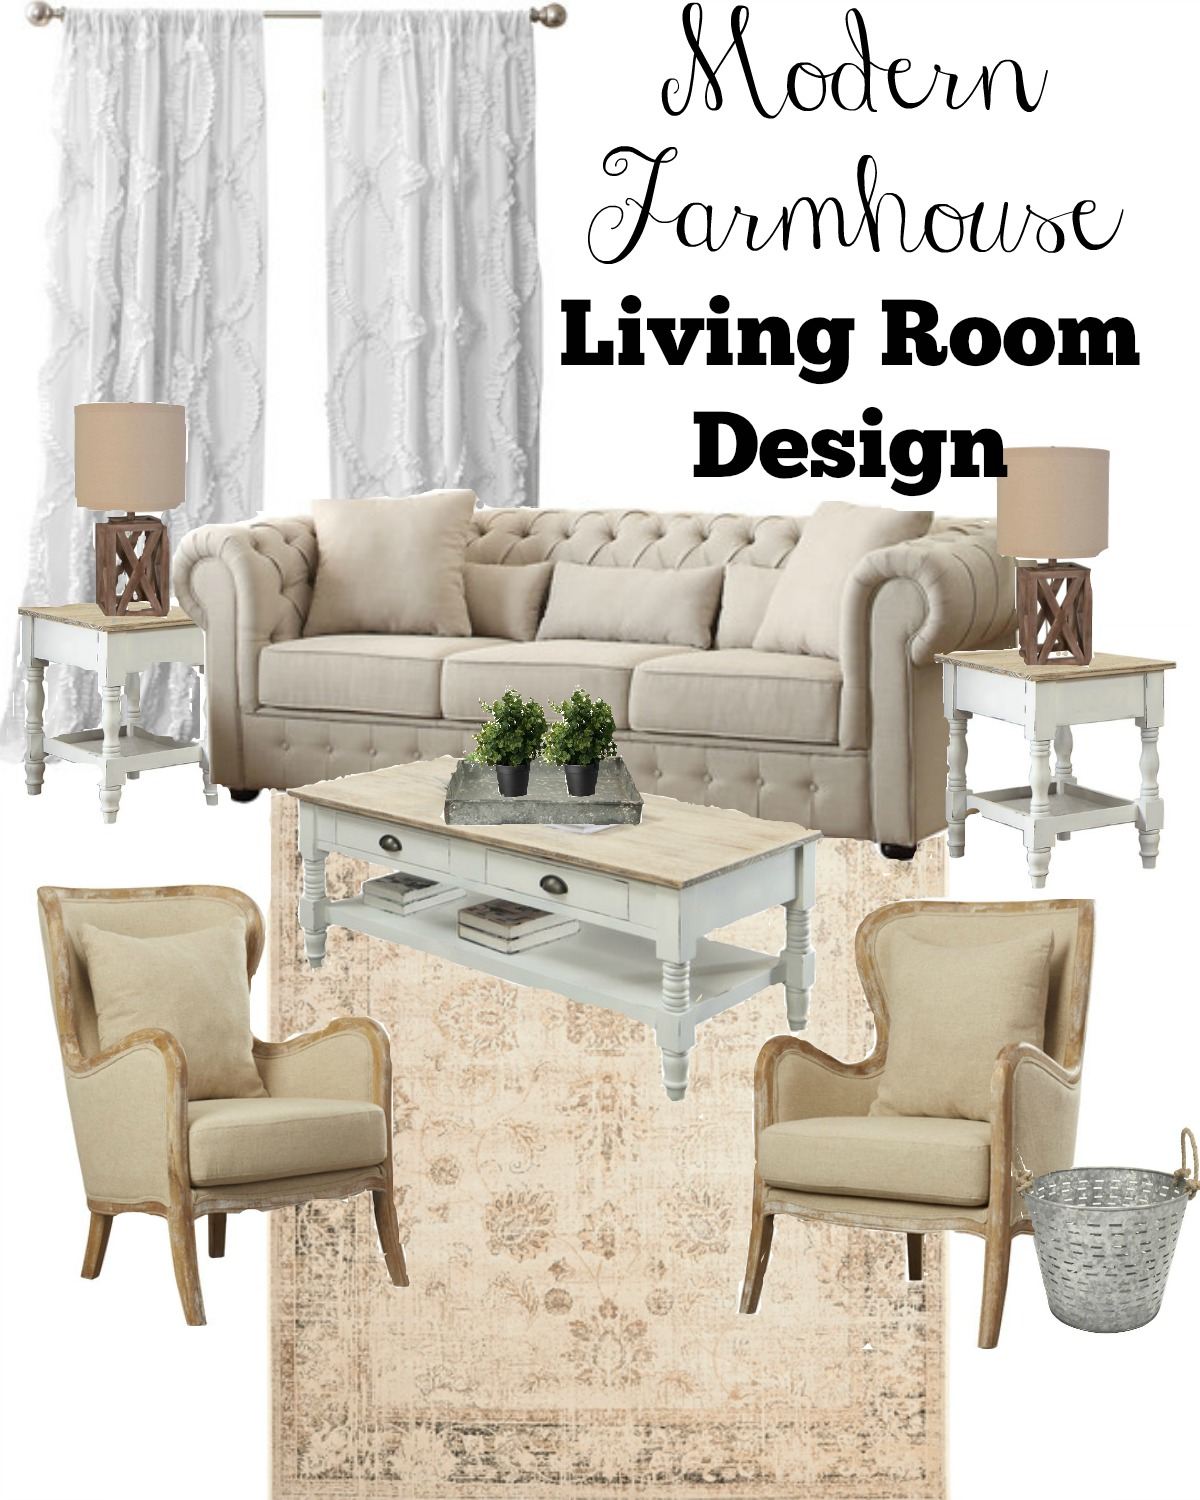 New 30 modern farmhouse living room decorating design of for Design home living room